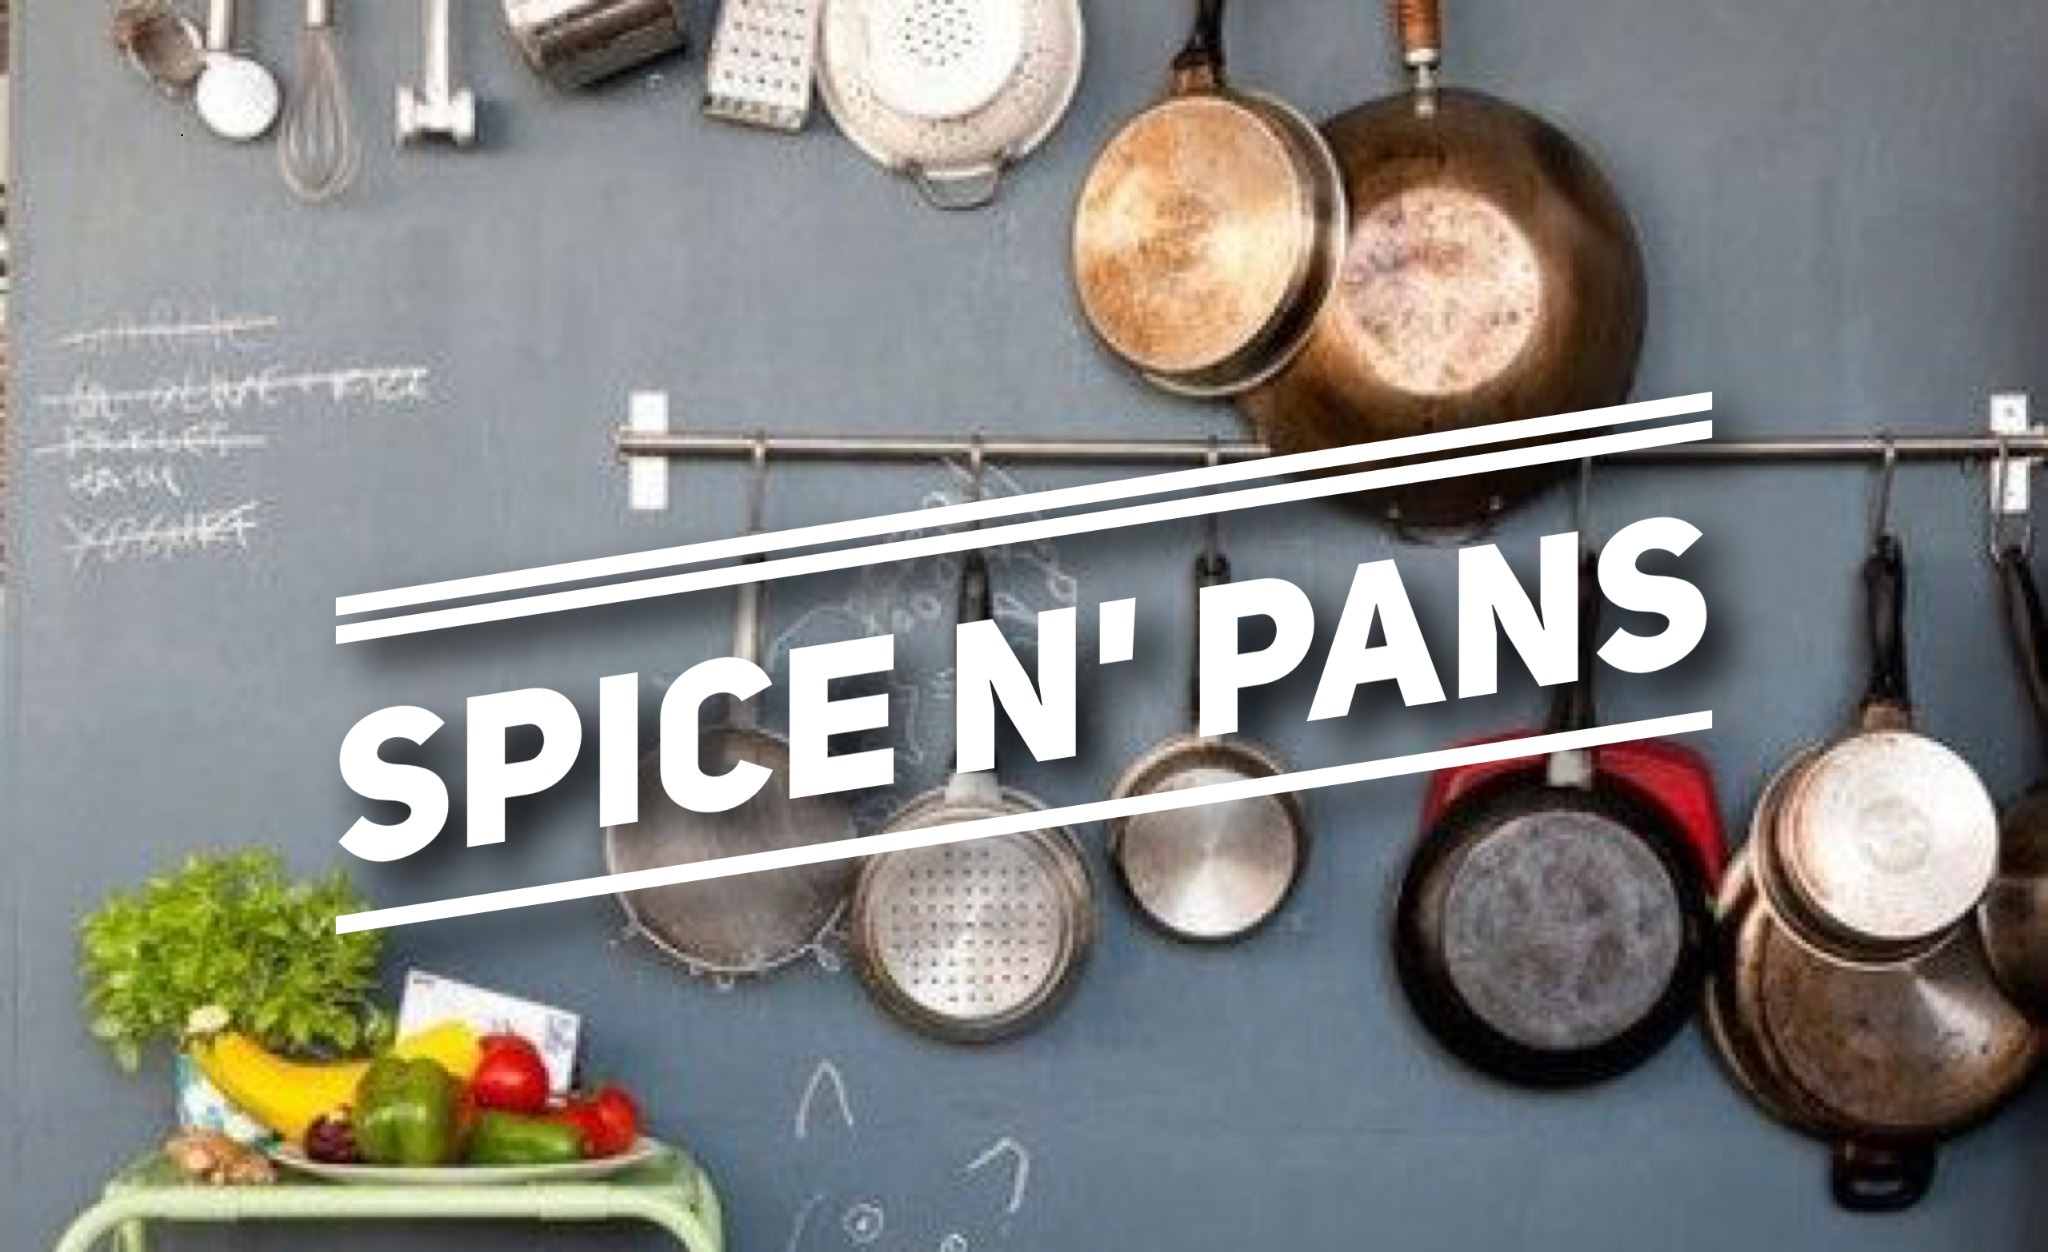 The Evolution of Spice N' Pans